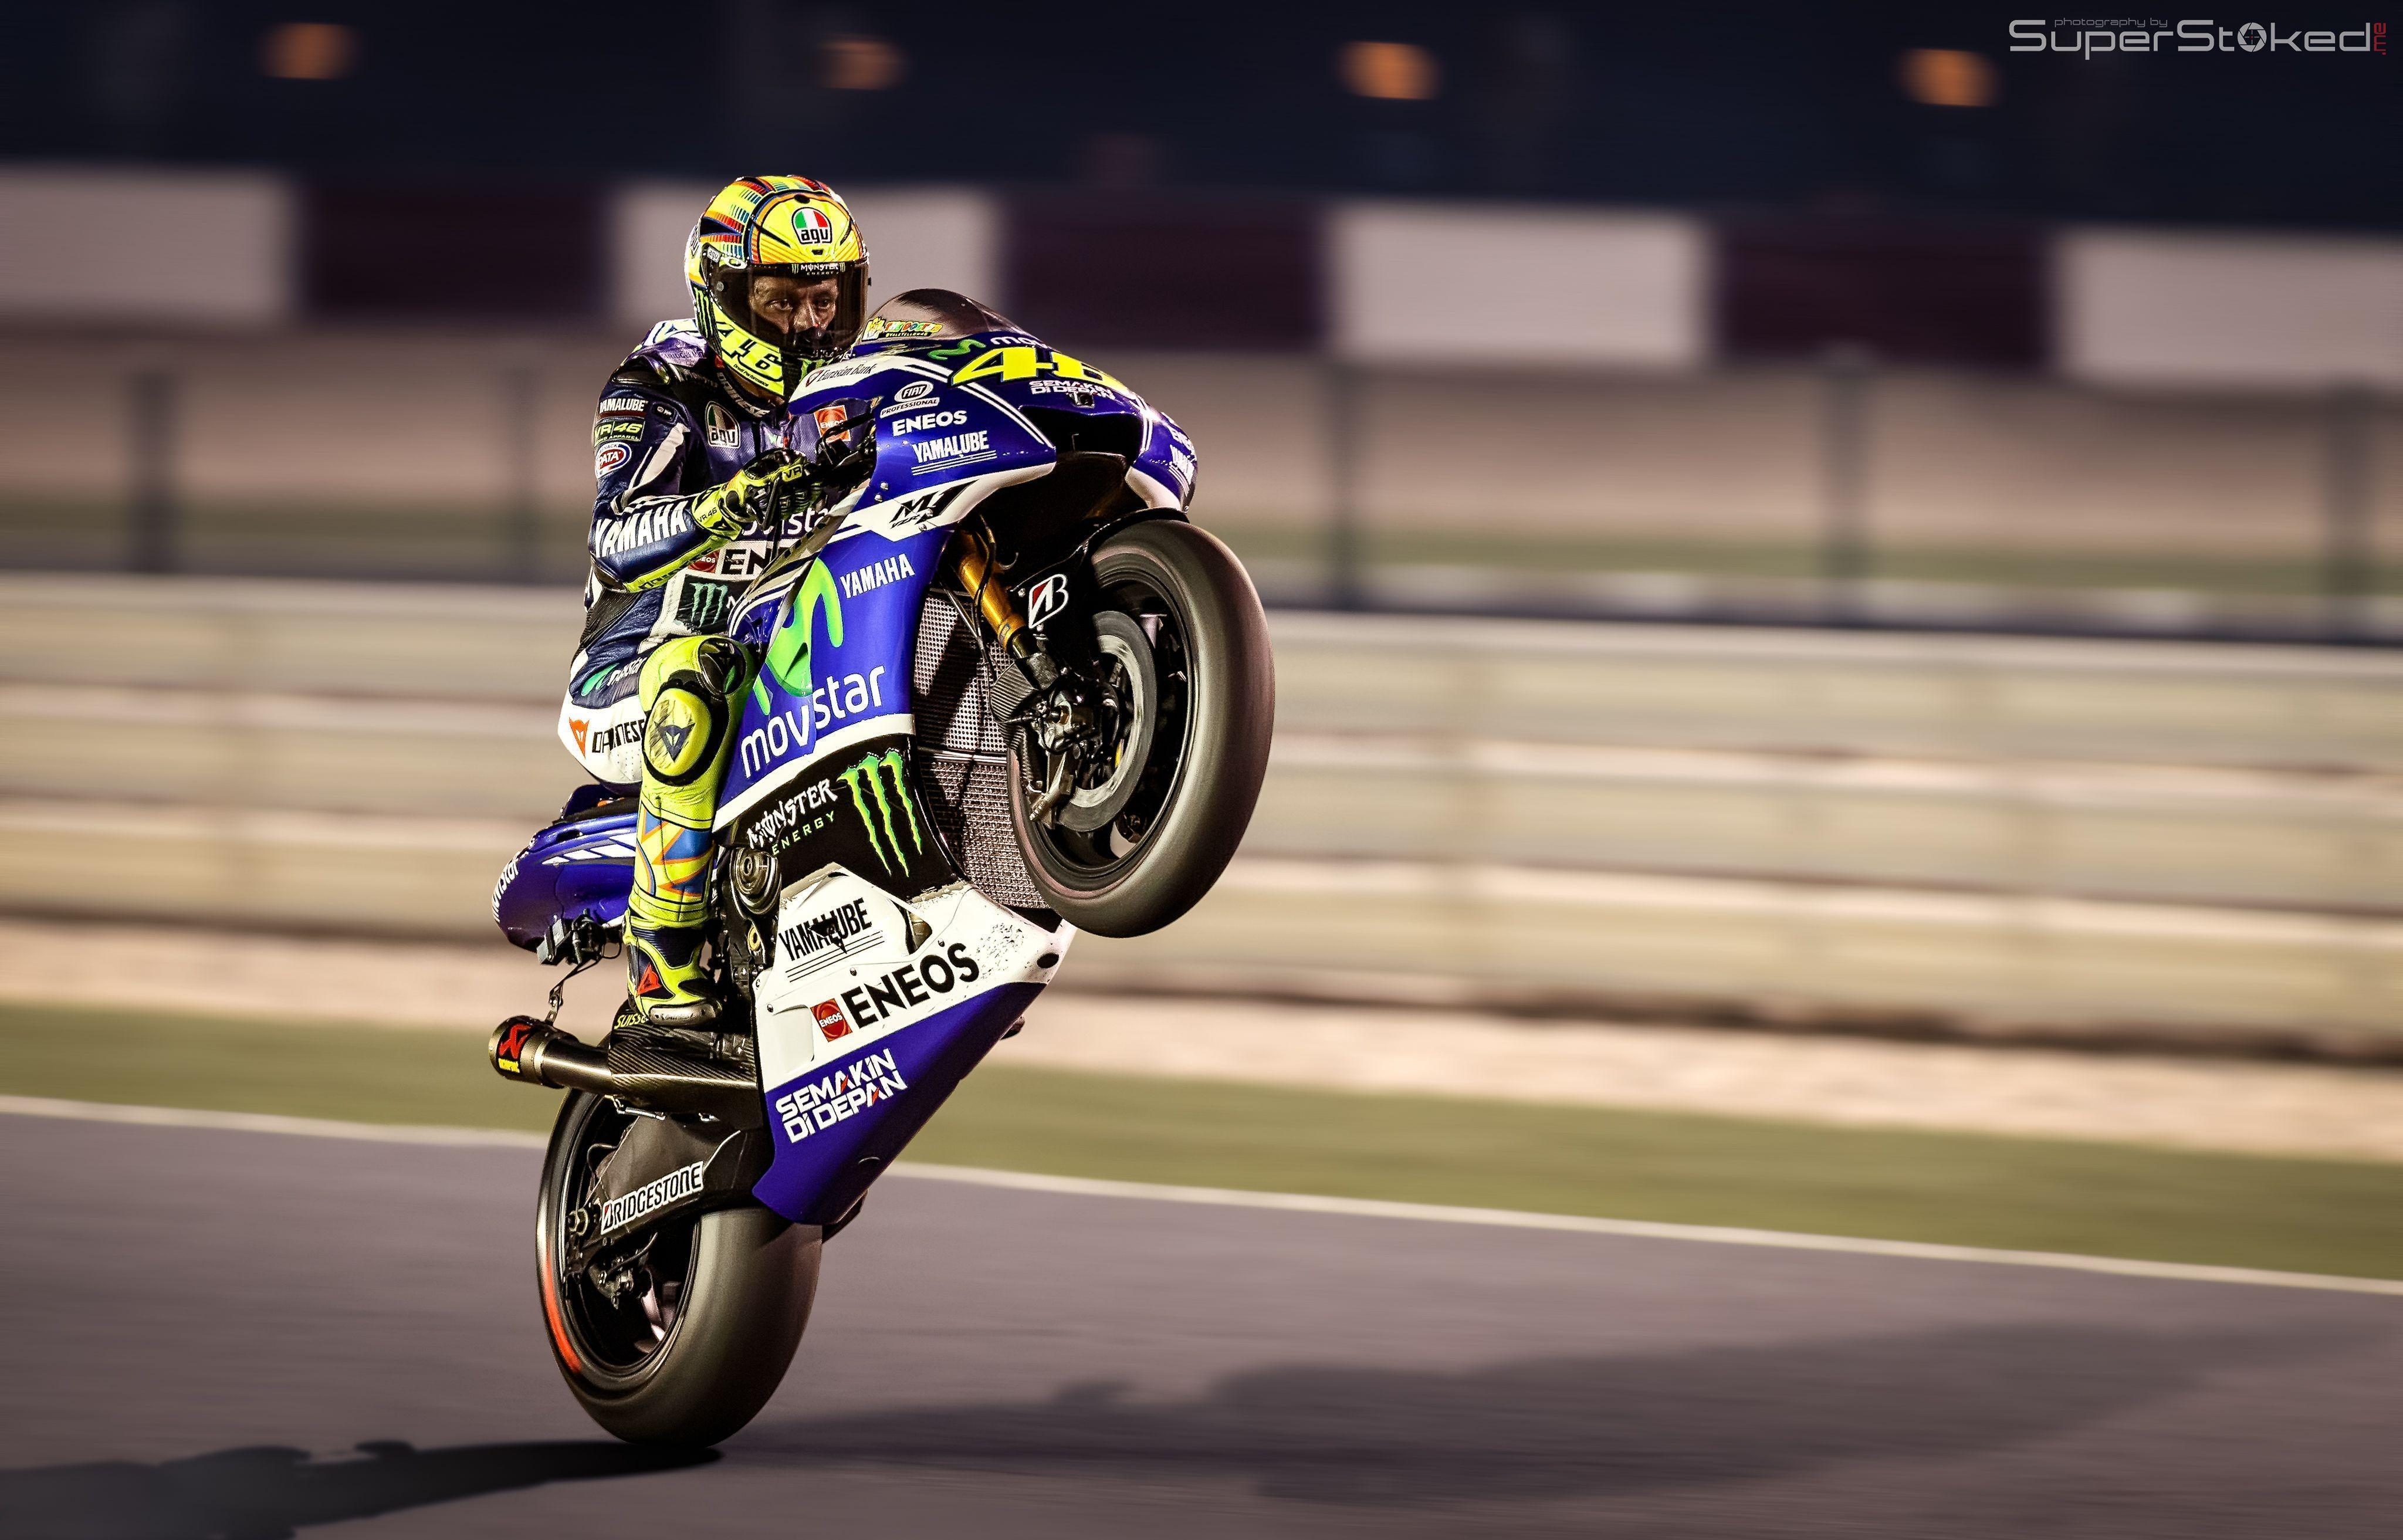 Wallpaper valentino rossi news 2016 - betar and behlul wallpapers ...